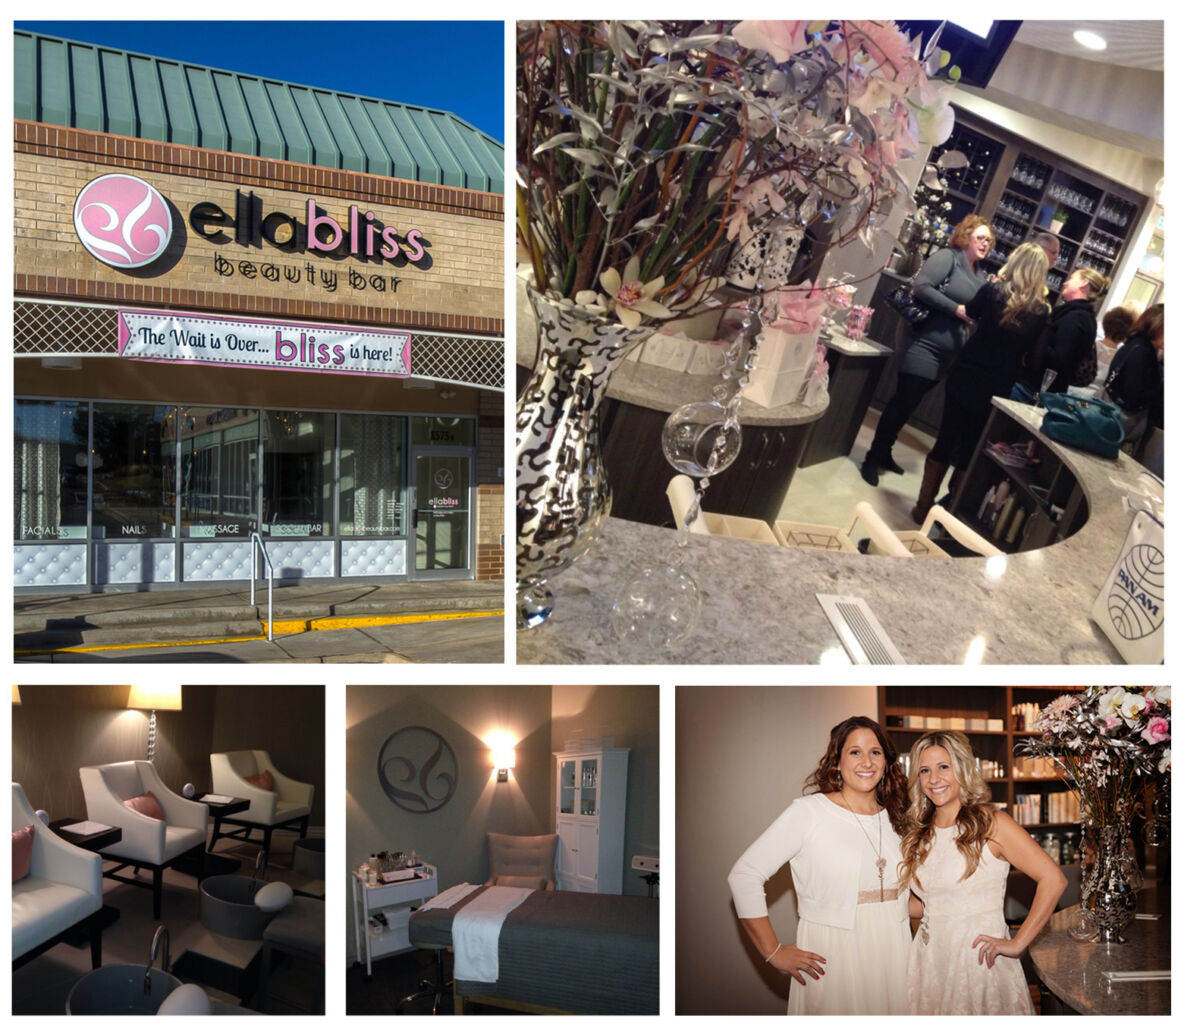 Ella Bliss Beauty Bar celebrates its grand opening.